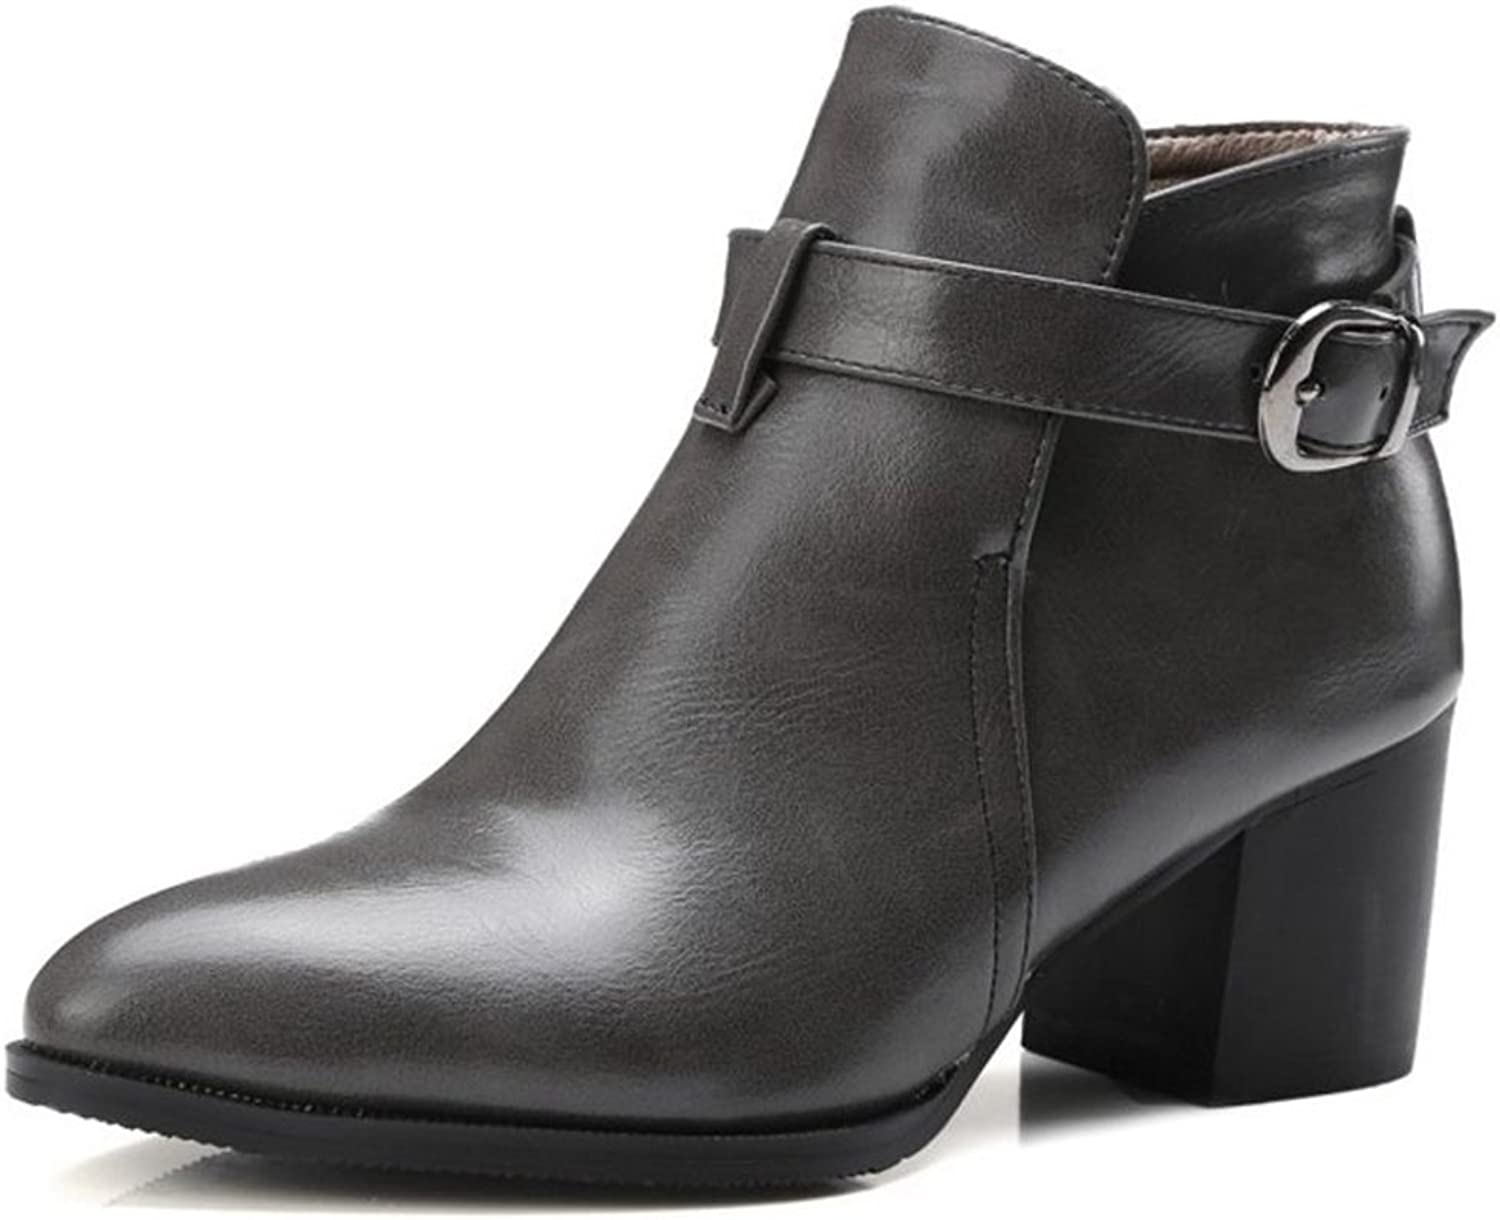 Smilice Large Size & Small Size Women Mid Block Heel Pointy Toe Ankle Booties Black